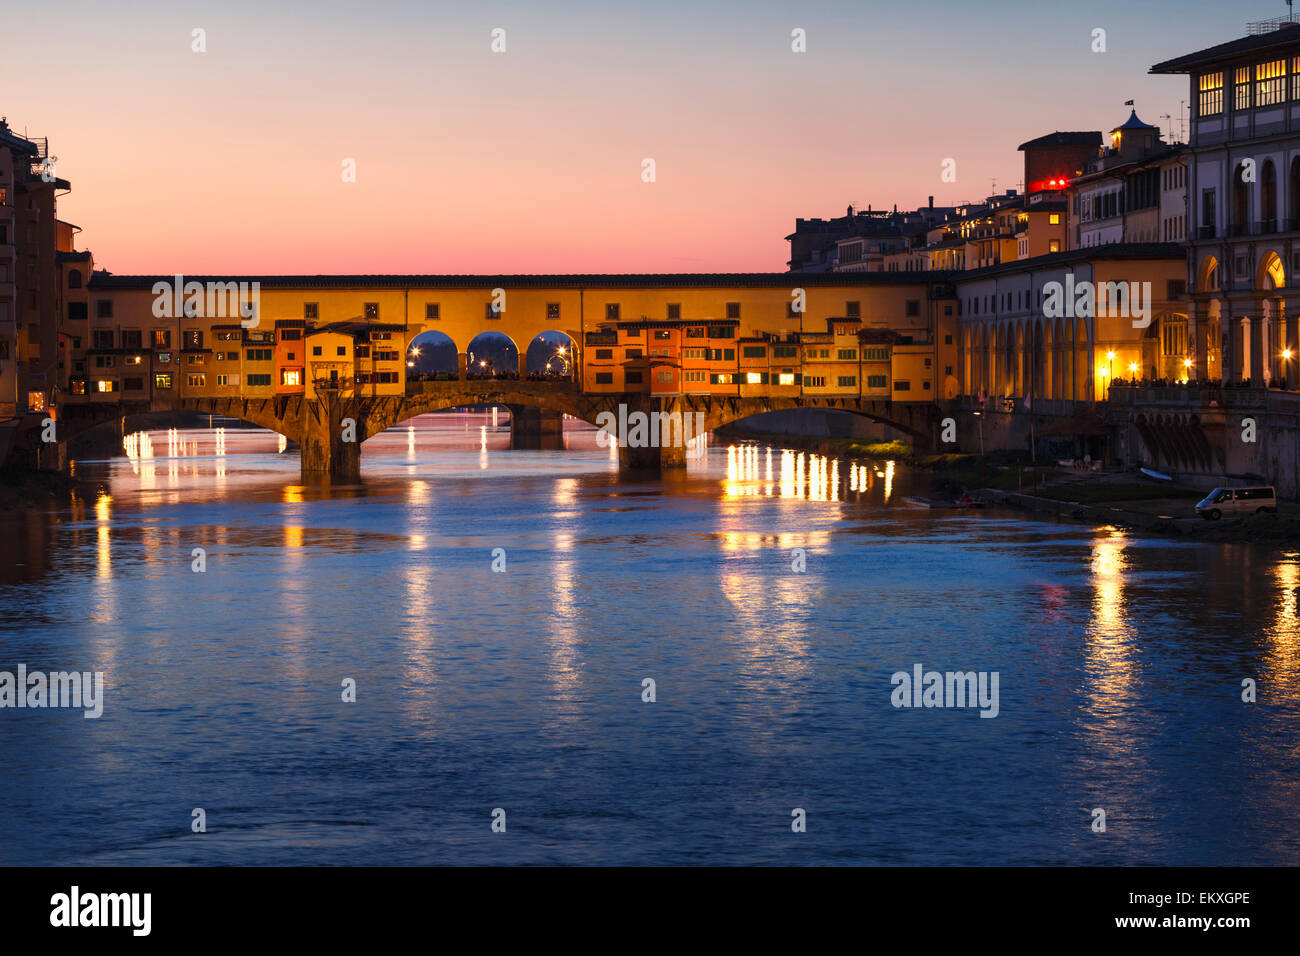 Ponte Vecchio at night reflected on the river Arno, Florence, Tuscany, Italy. - Stock Image